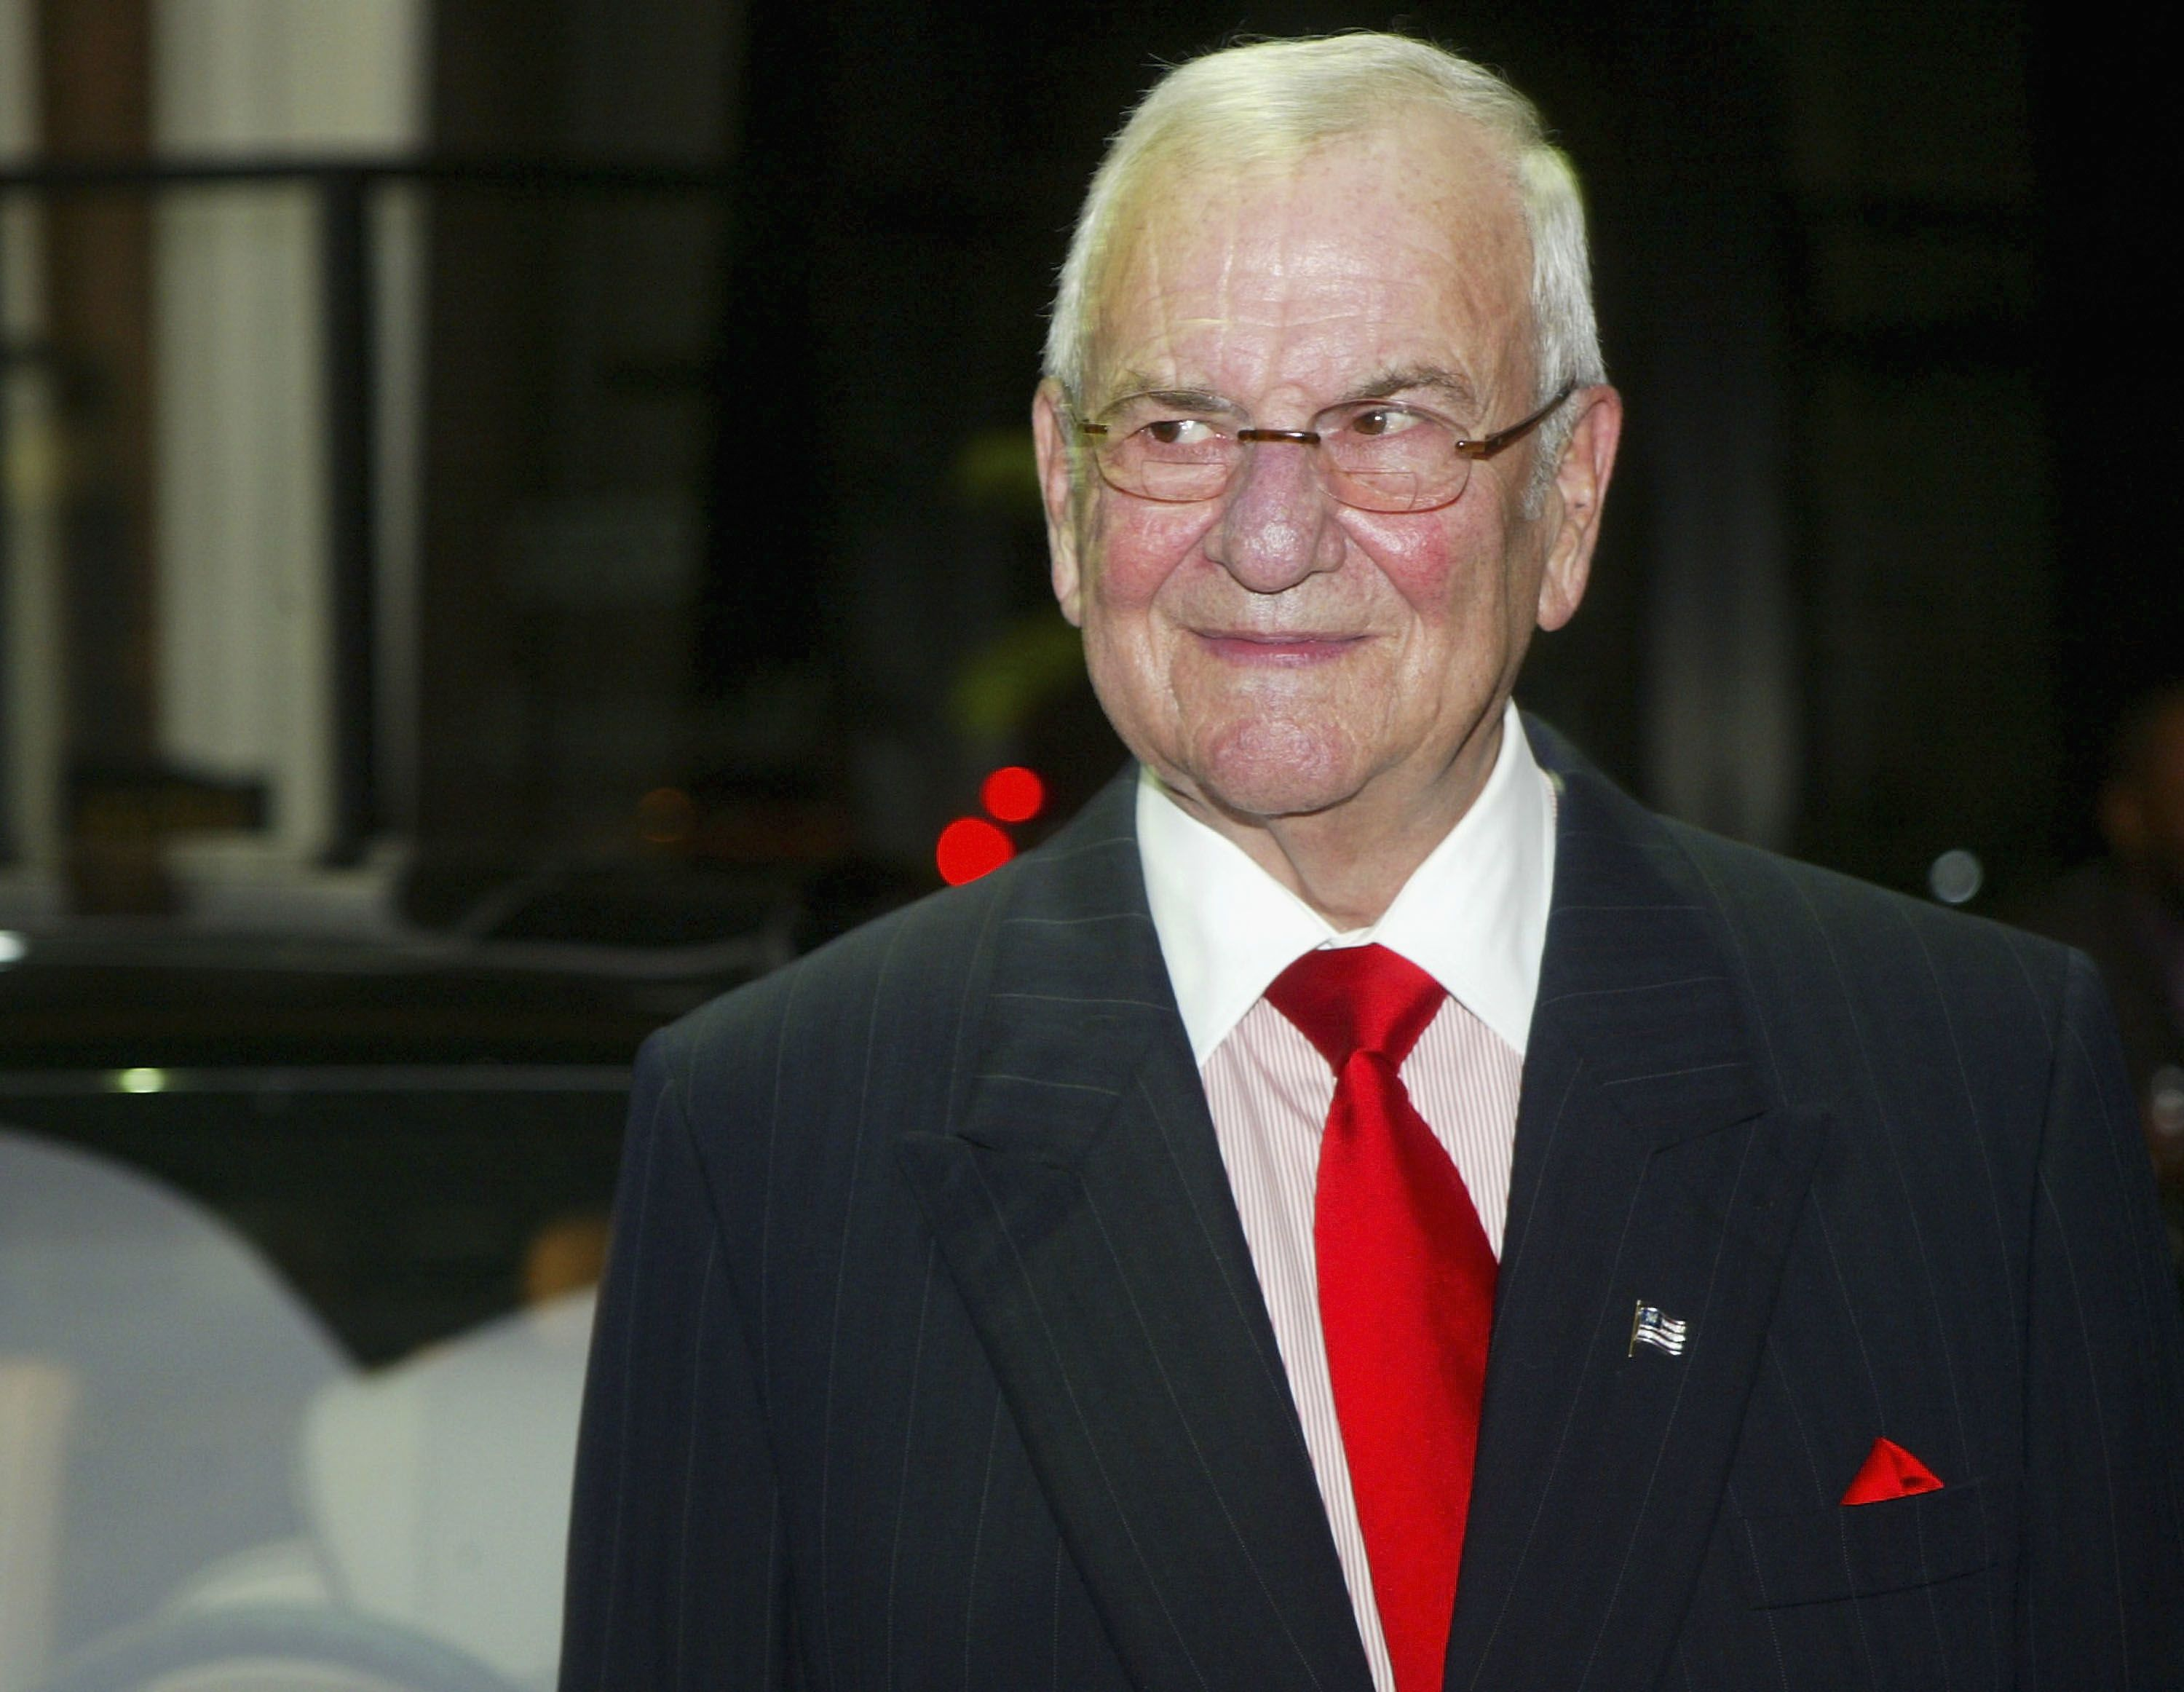 Lee Iacocca, auto industry icon, dead at 94